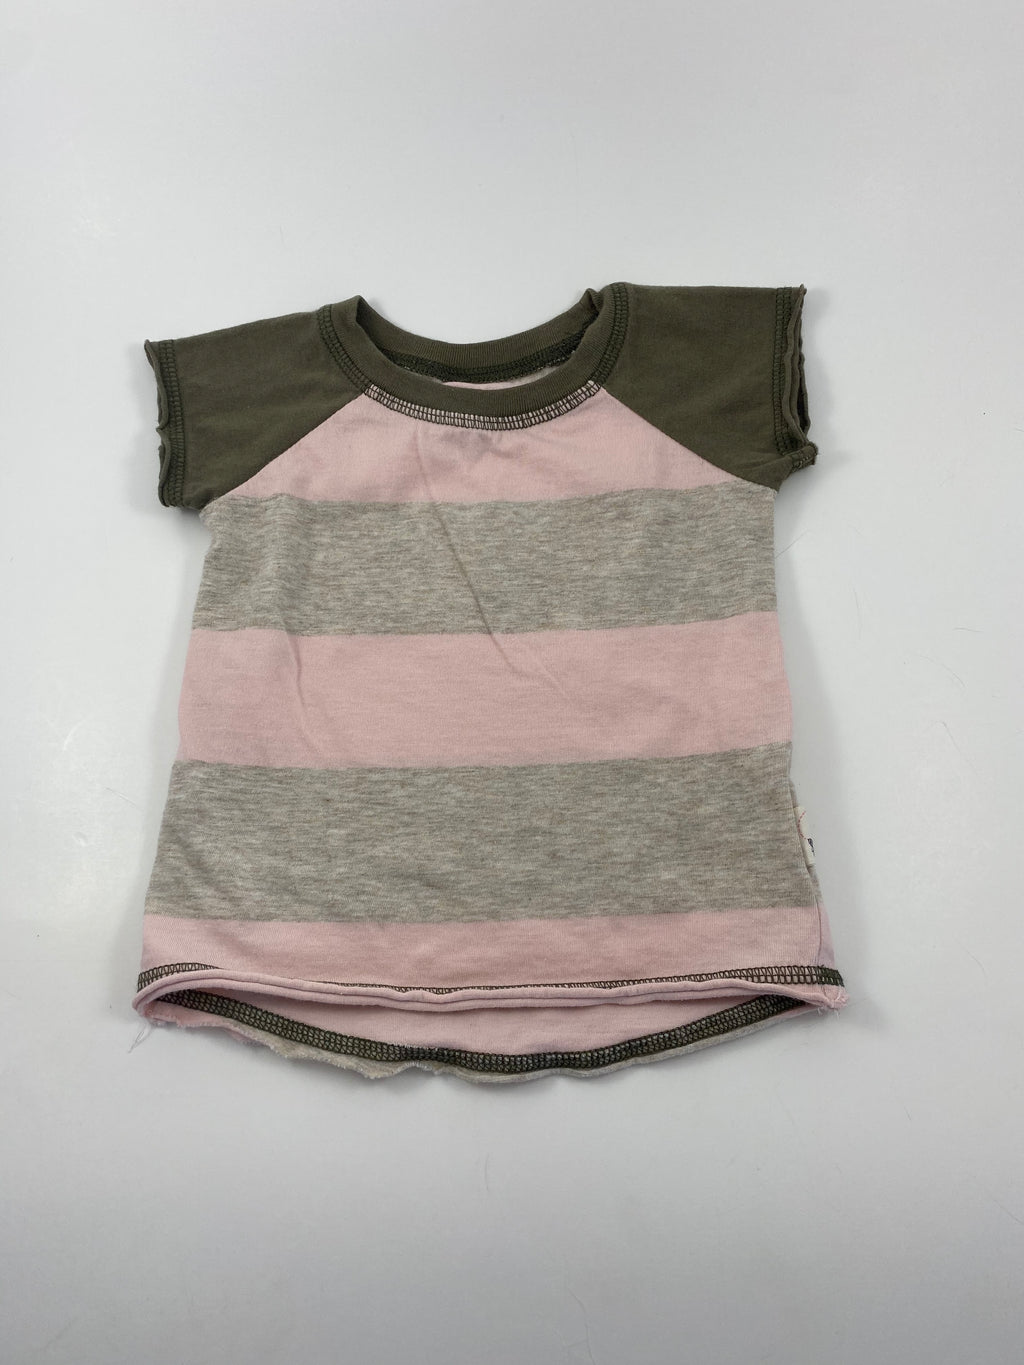 Girl's Short Sleeve Shirt - Size 12-18mo